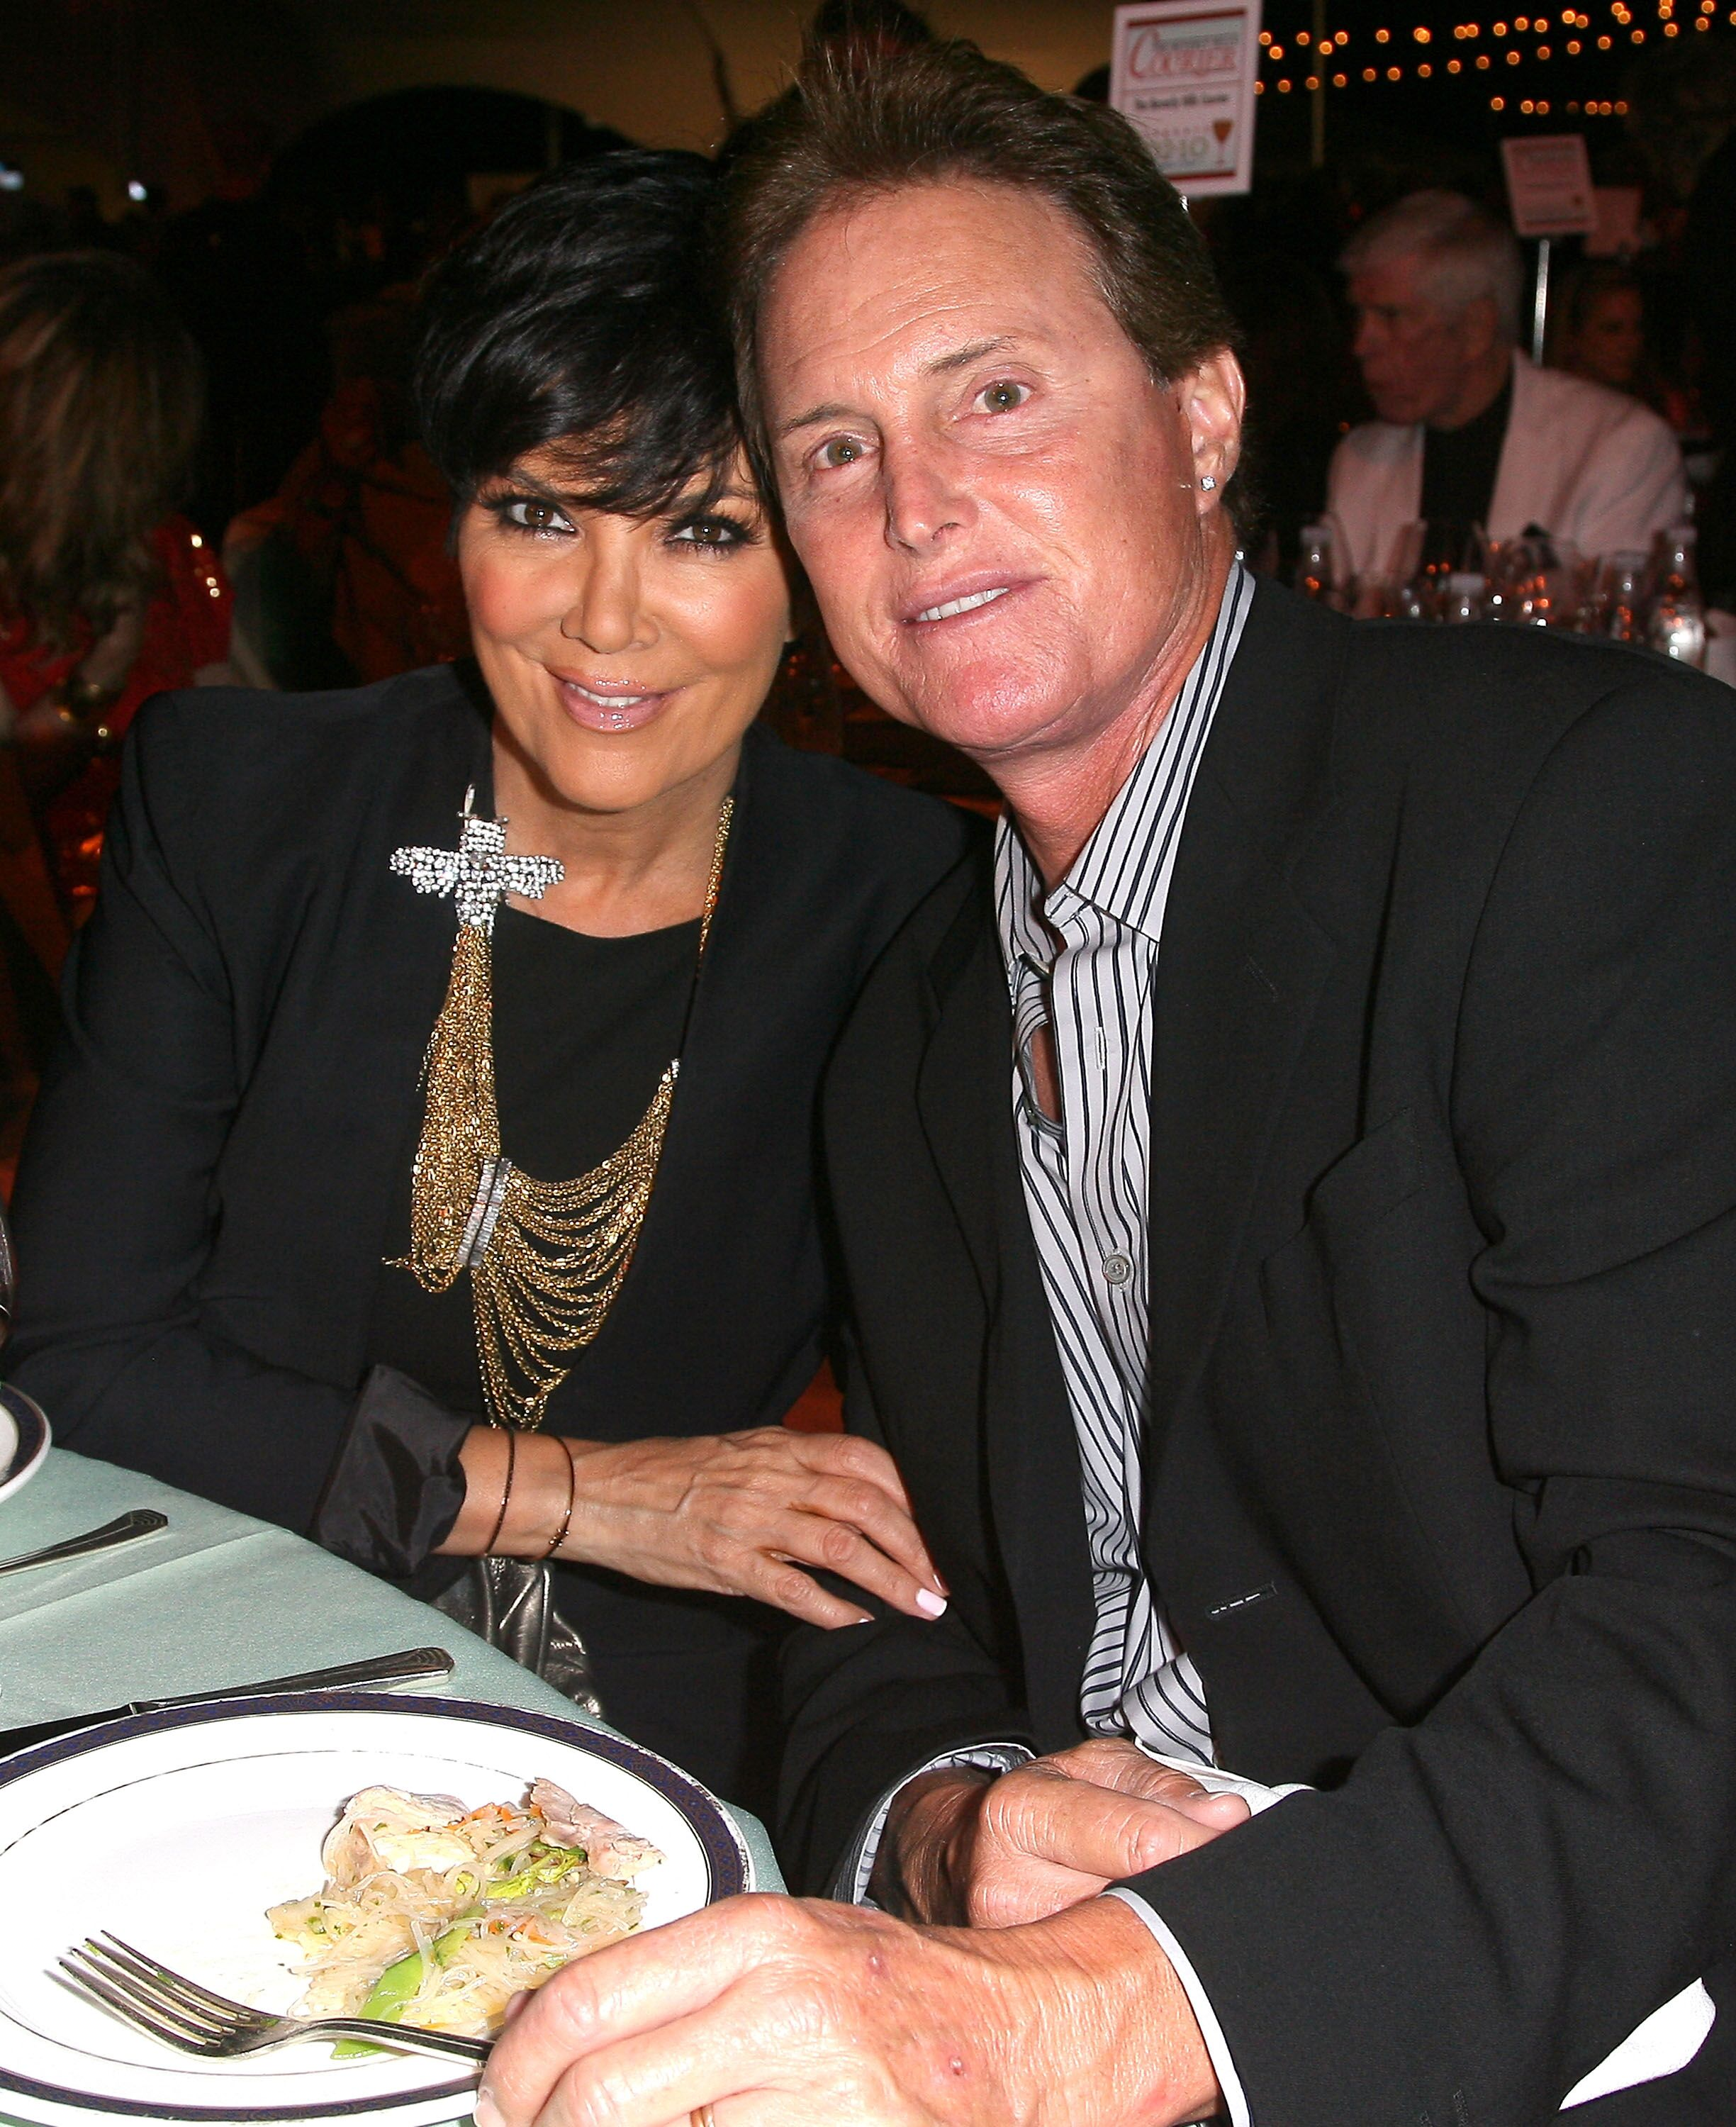 Kris Jenner and Bruce Jenner attend the Taste Of Beverly Hills Wine & Food Festival Opening Night. | Source: Getty Images